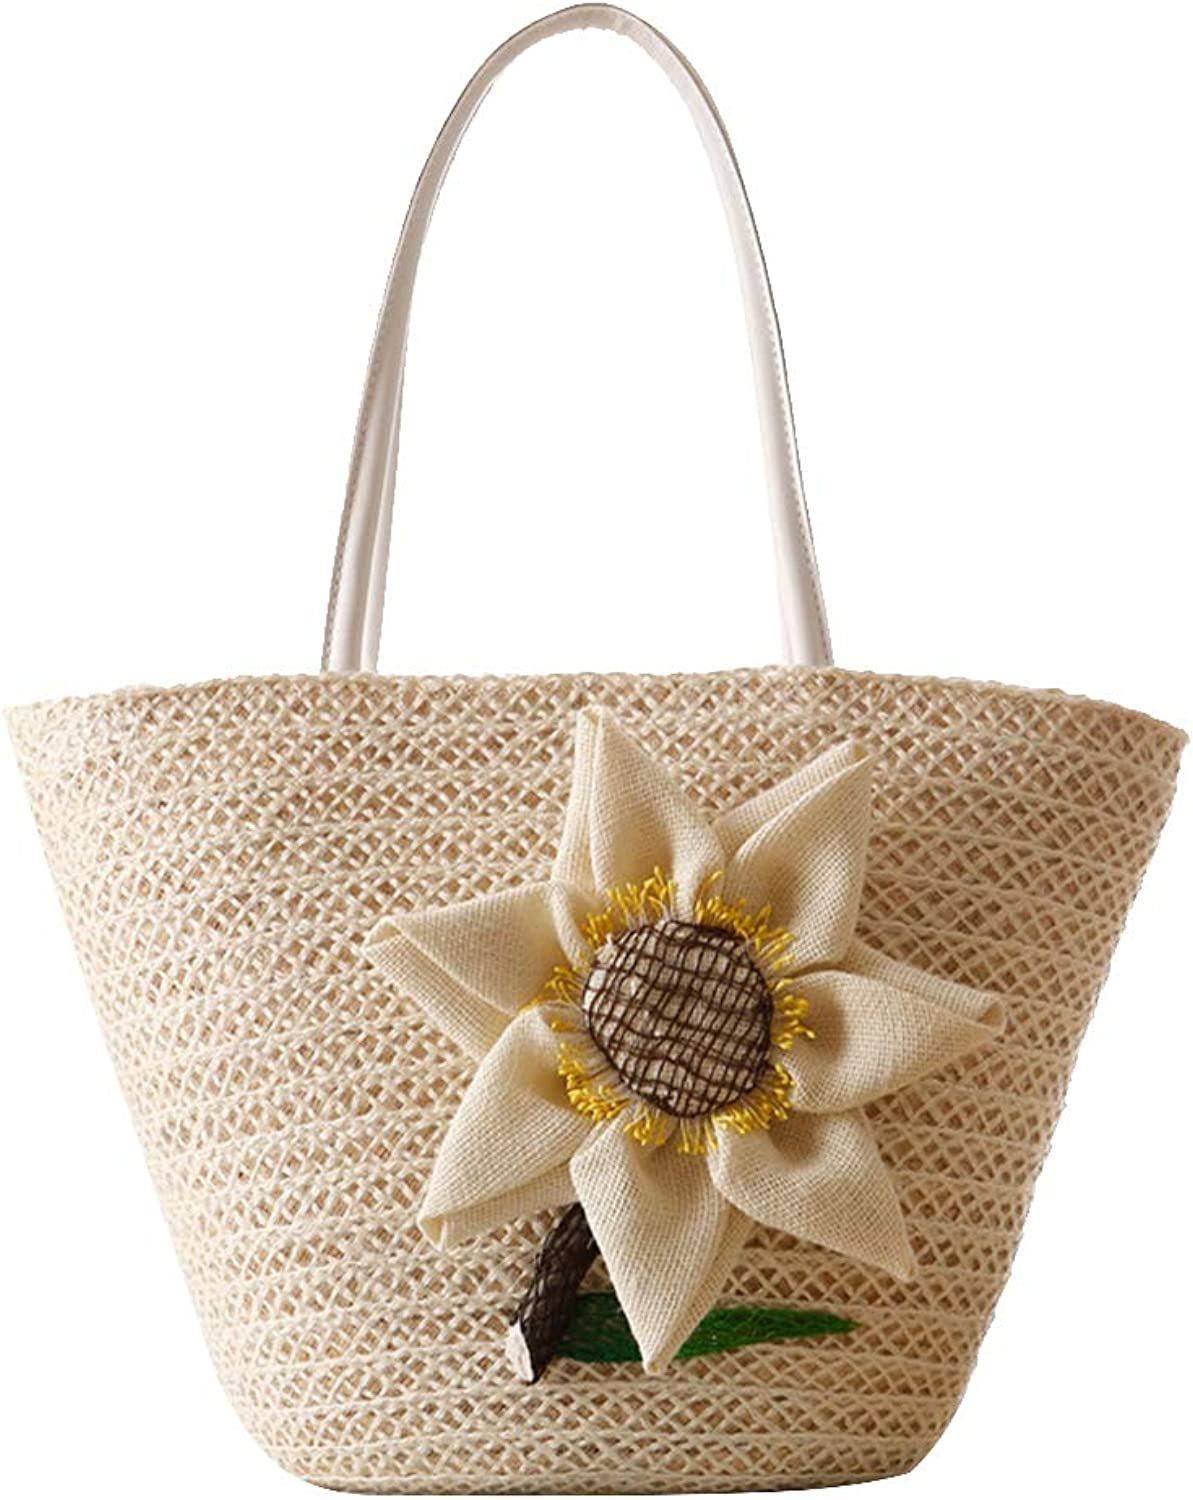 Bucolic Style Straw Woven Bag Flower Woven Shoulder Bag Beach Bag for Outdoor Travel (Beige)